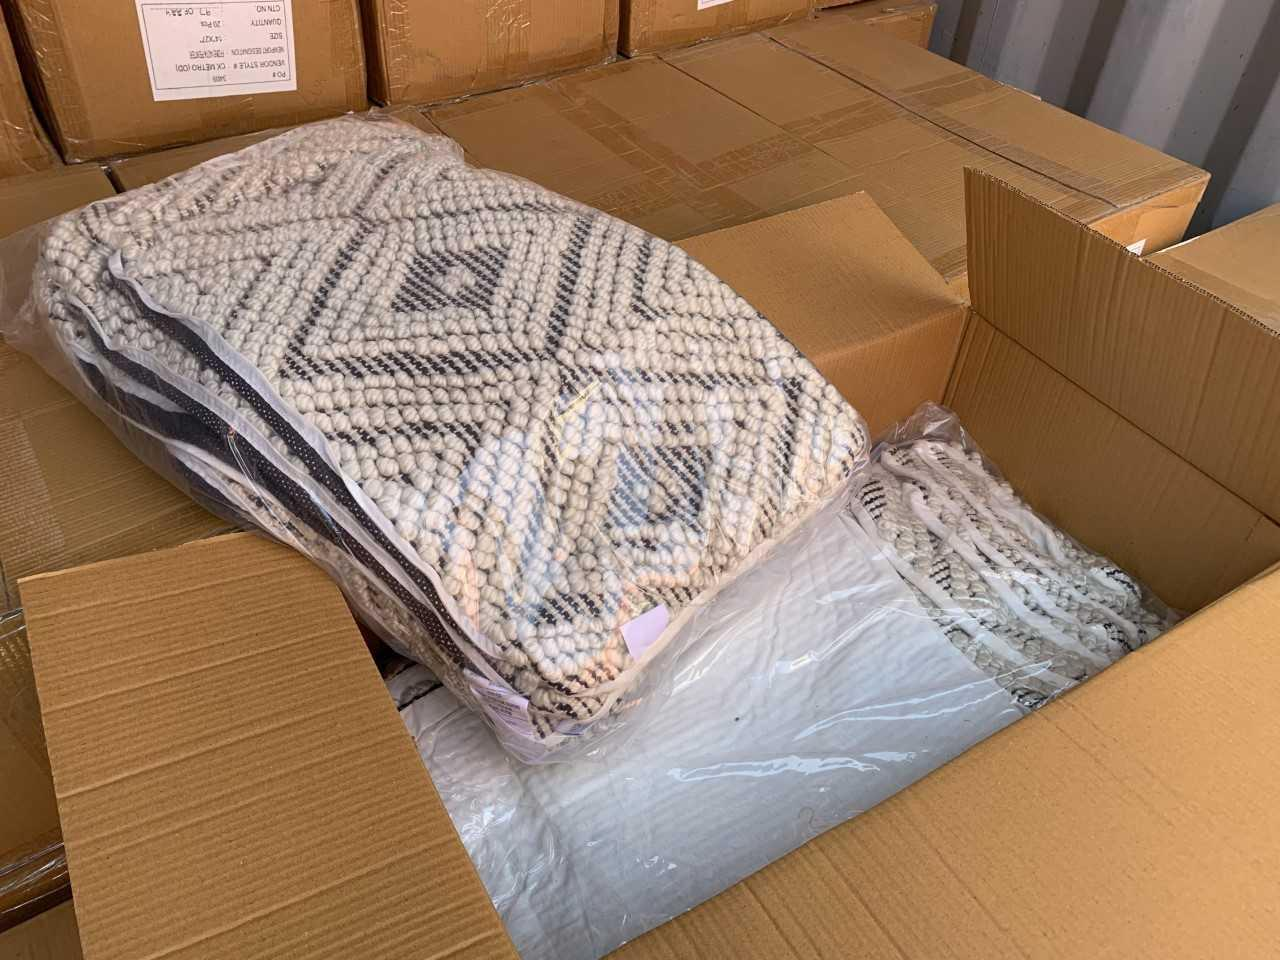 Powerloom & Woven Made ups / Cushion Covers - 3 abandoned Containers